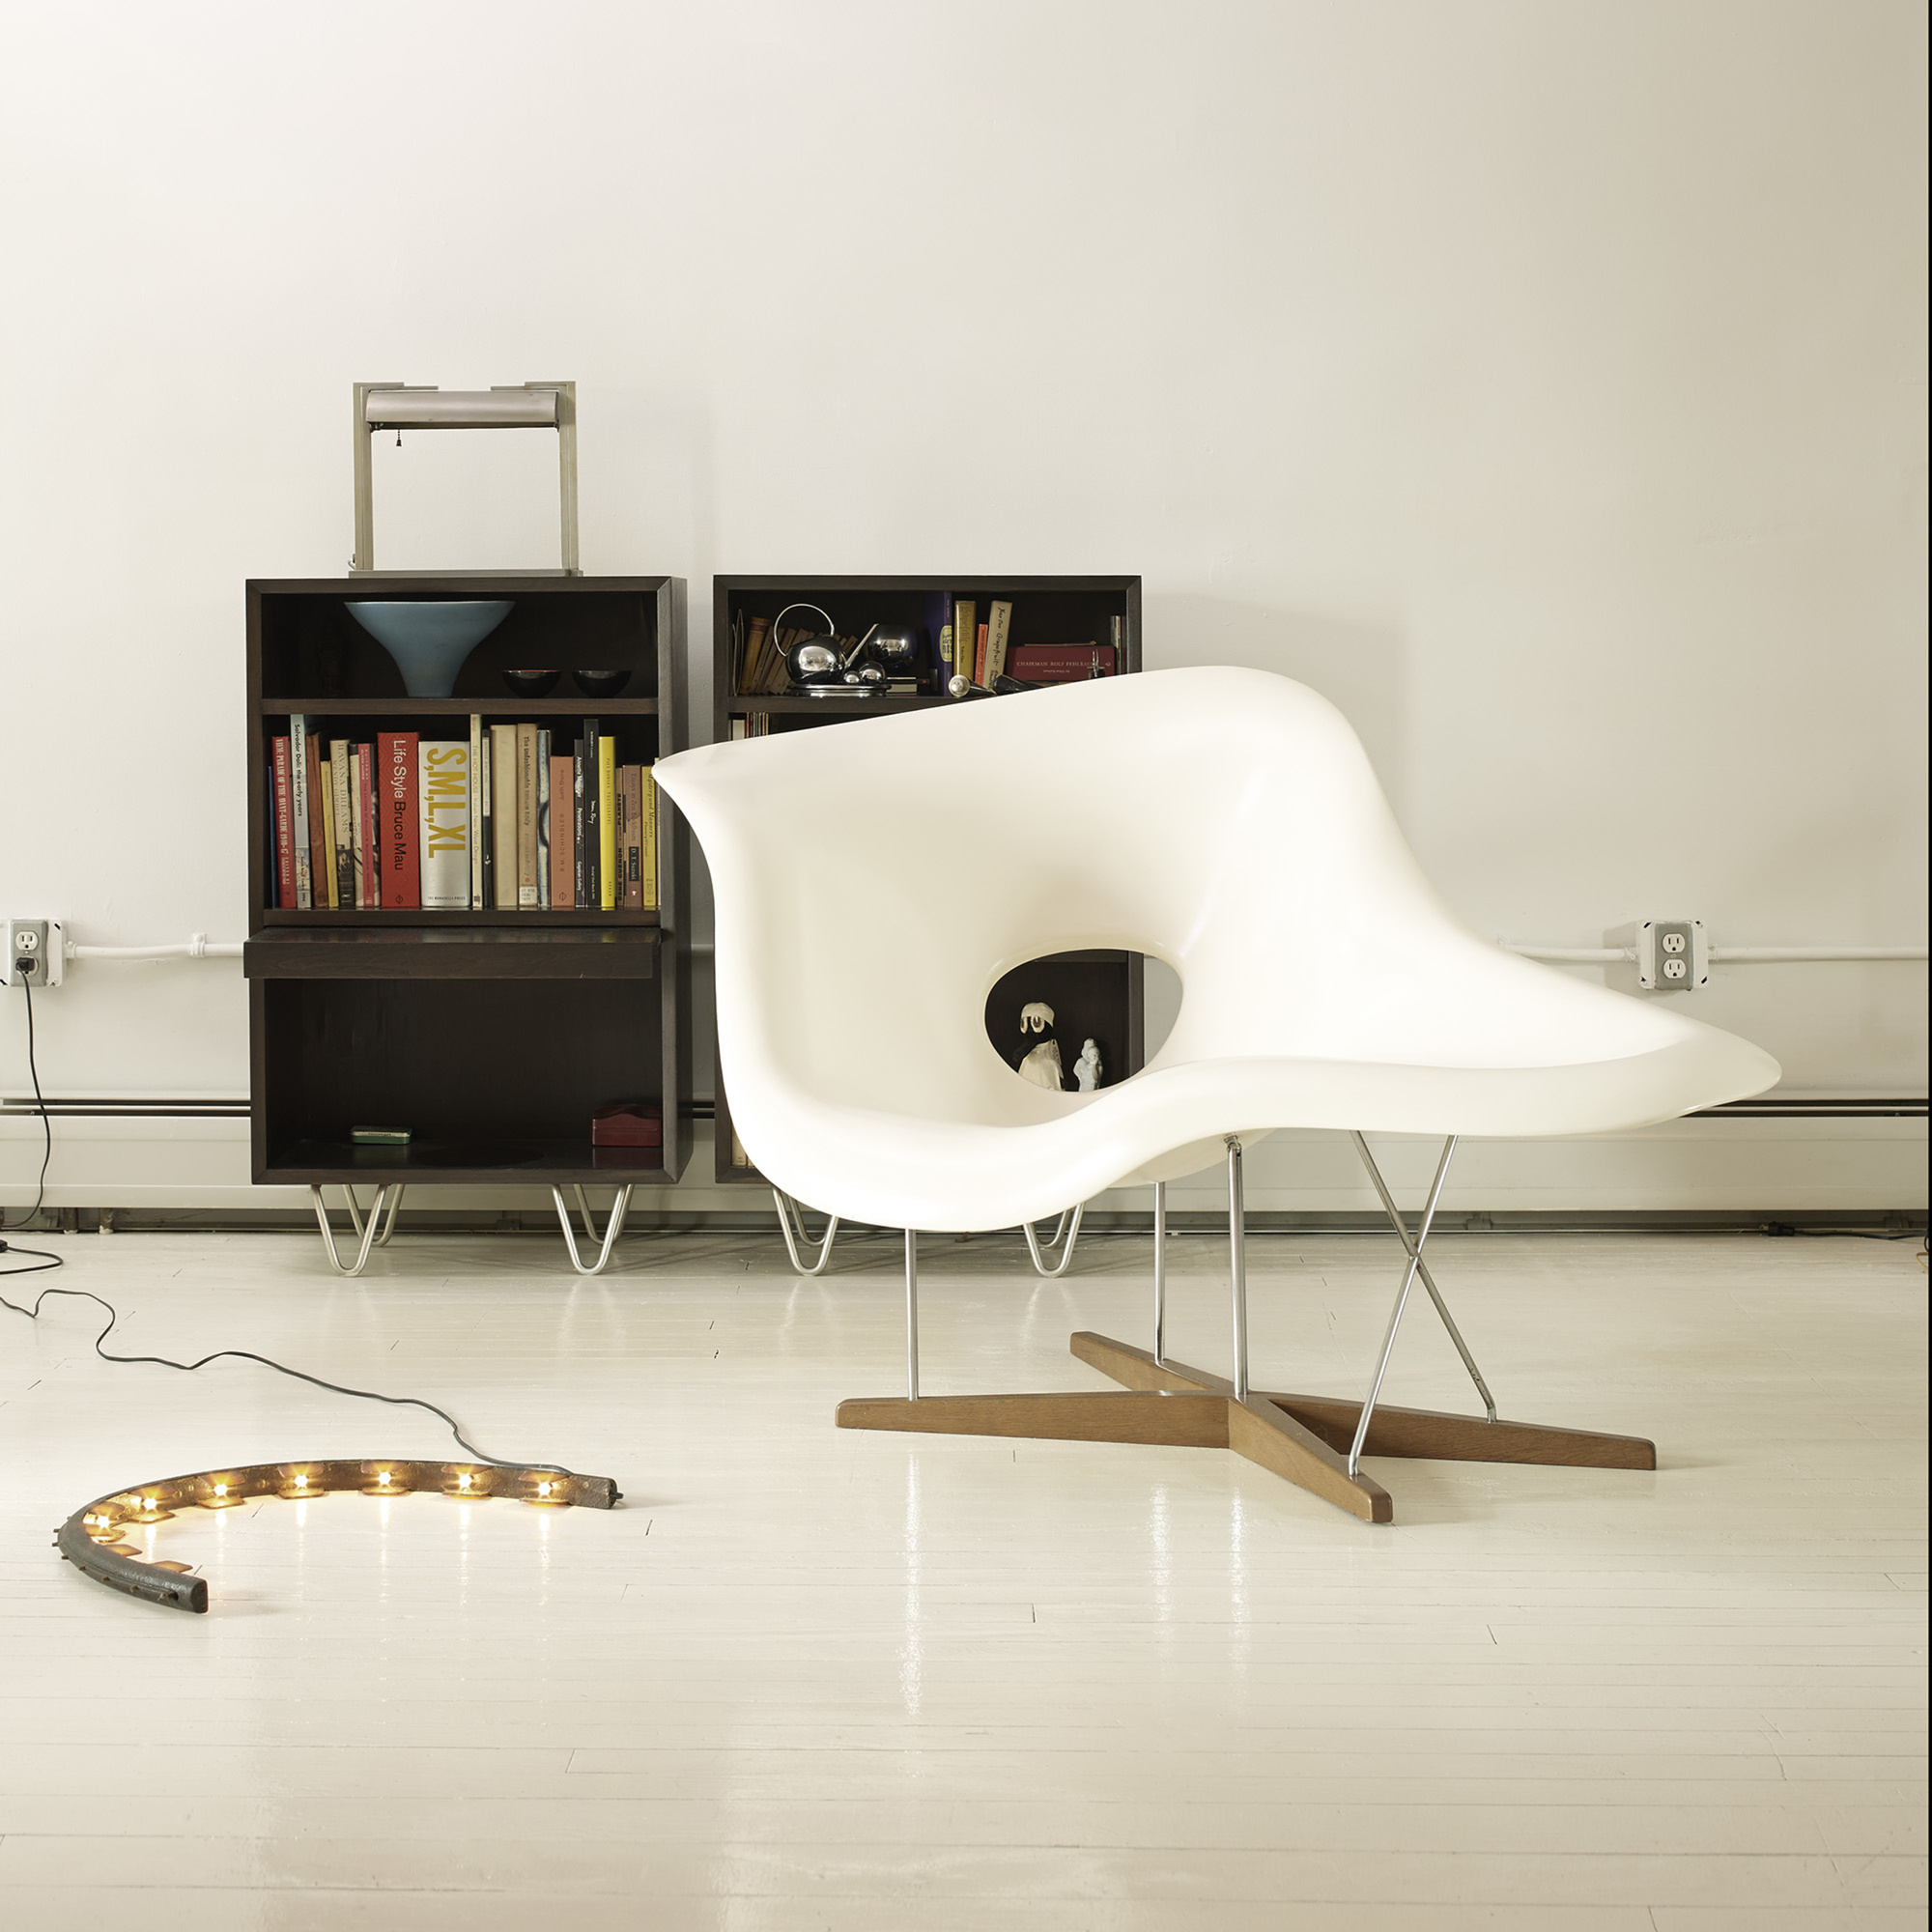 Chaise ray eames good chaise de bureau vitra charles u for Chaise eames bascule